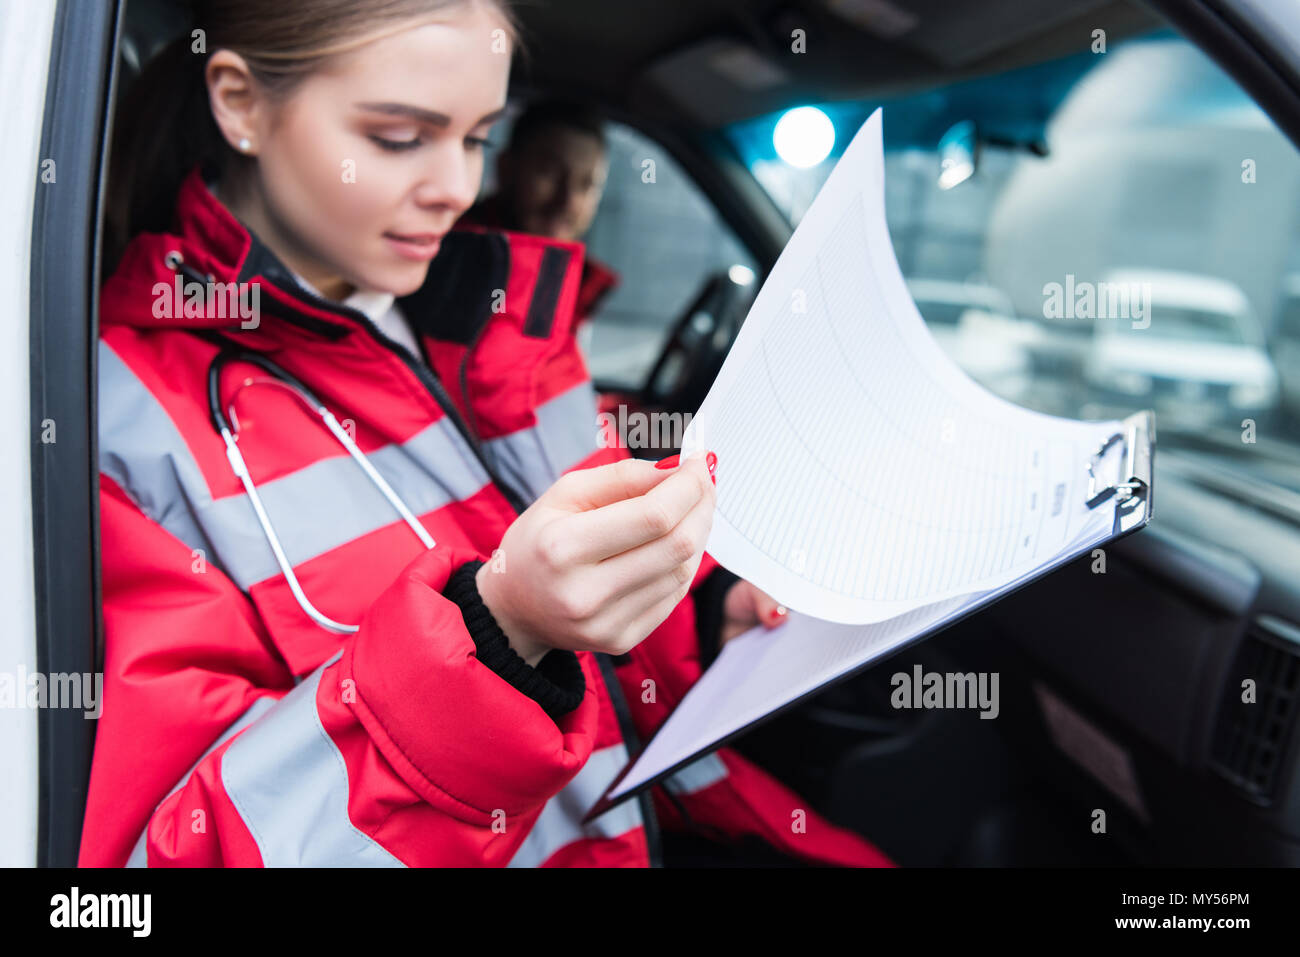 female paramedic sitting in ambulance and looking at clipboard - Stock Image